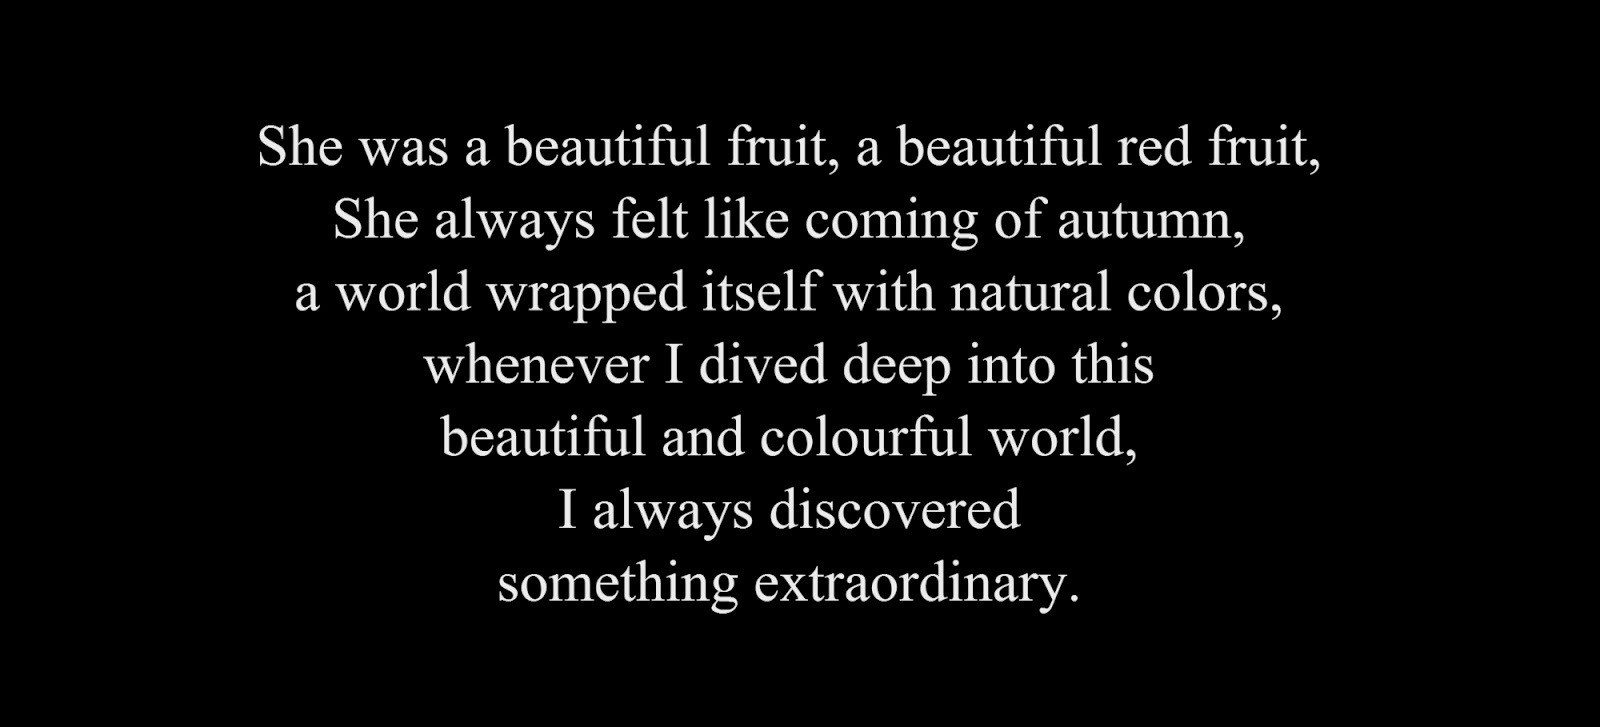 She was a beautiful fruit, a beautiful red fruit, She always felt like coming of autumn, a world wrapped itself with natural colors, whenever I dived deep into this beautiful and colourful world, I always discovered something extraordinary.